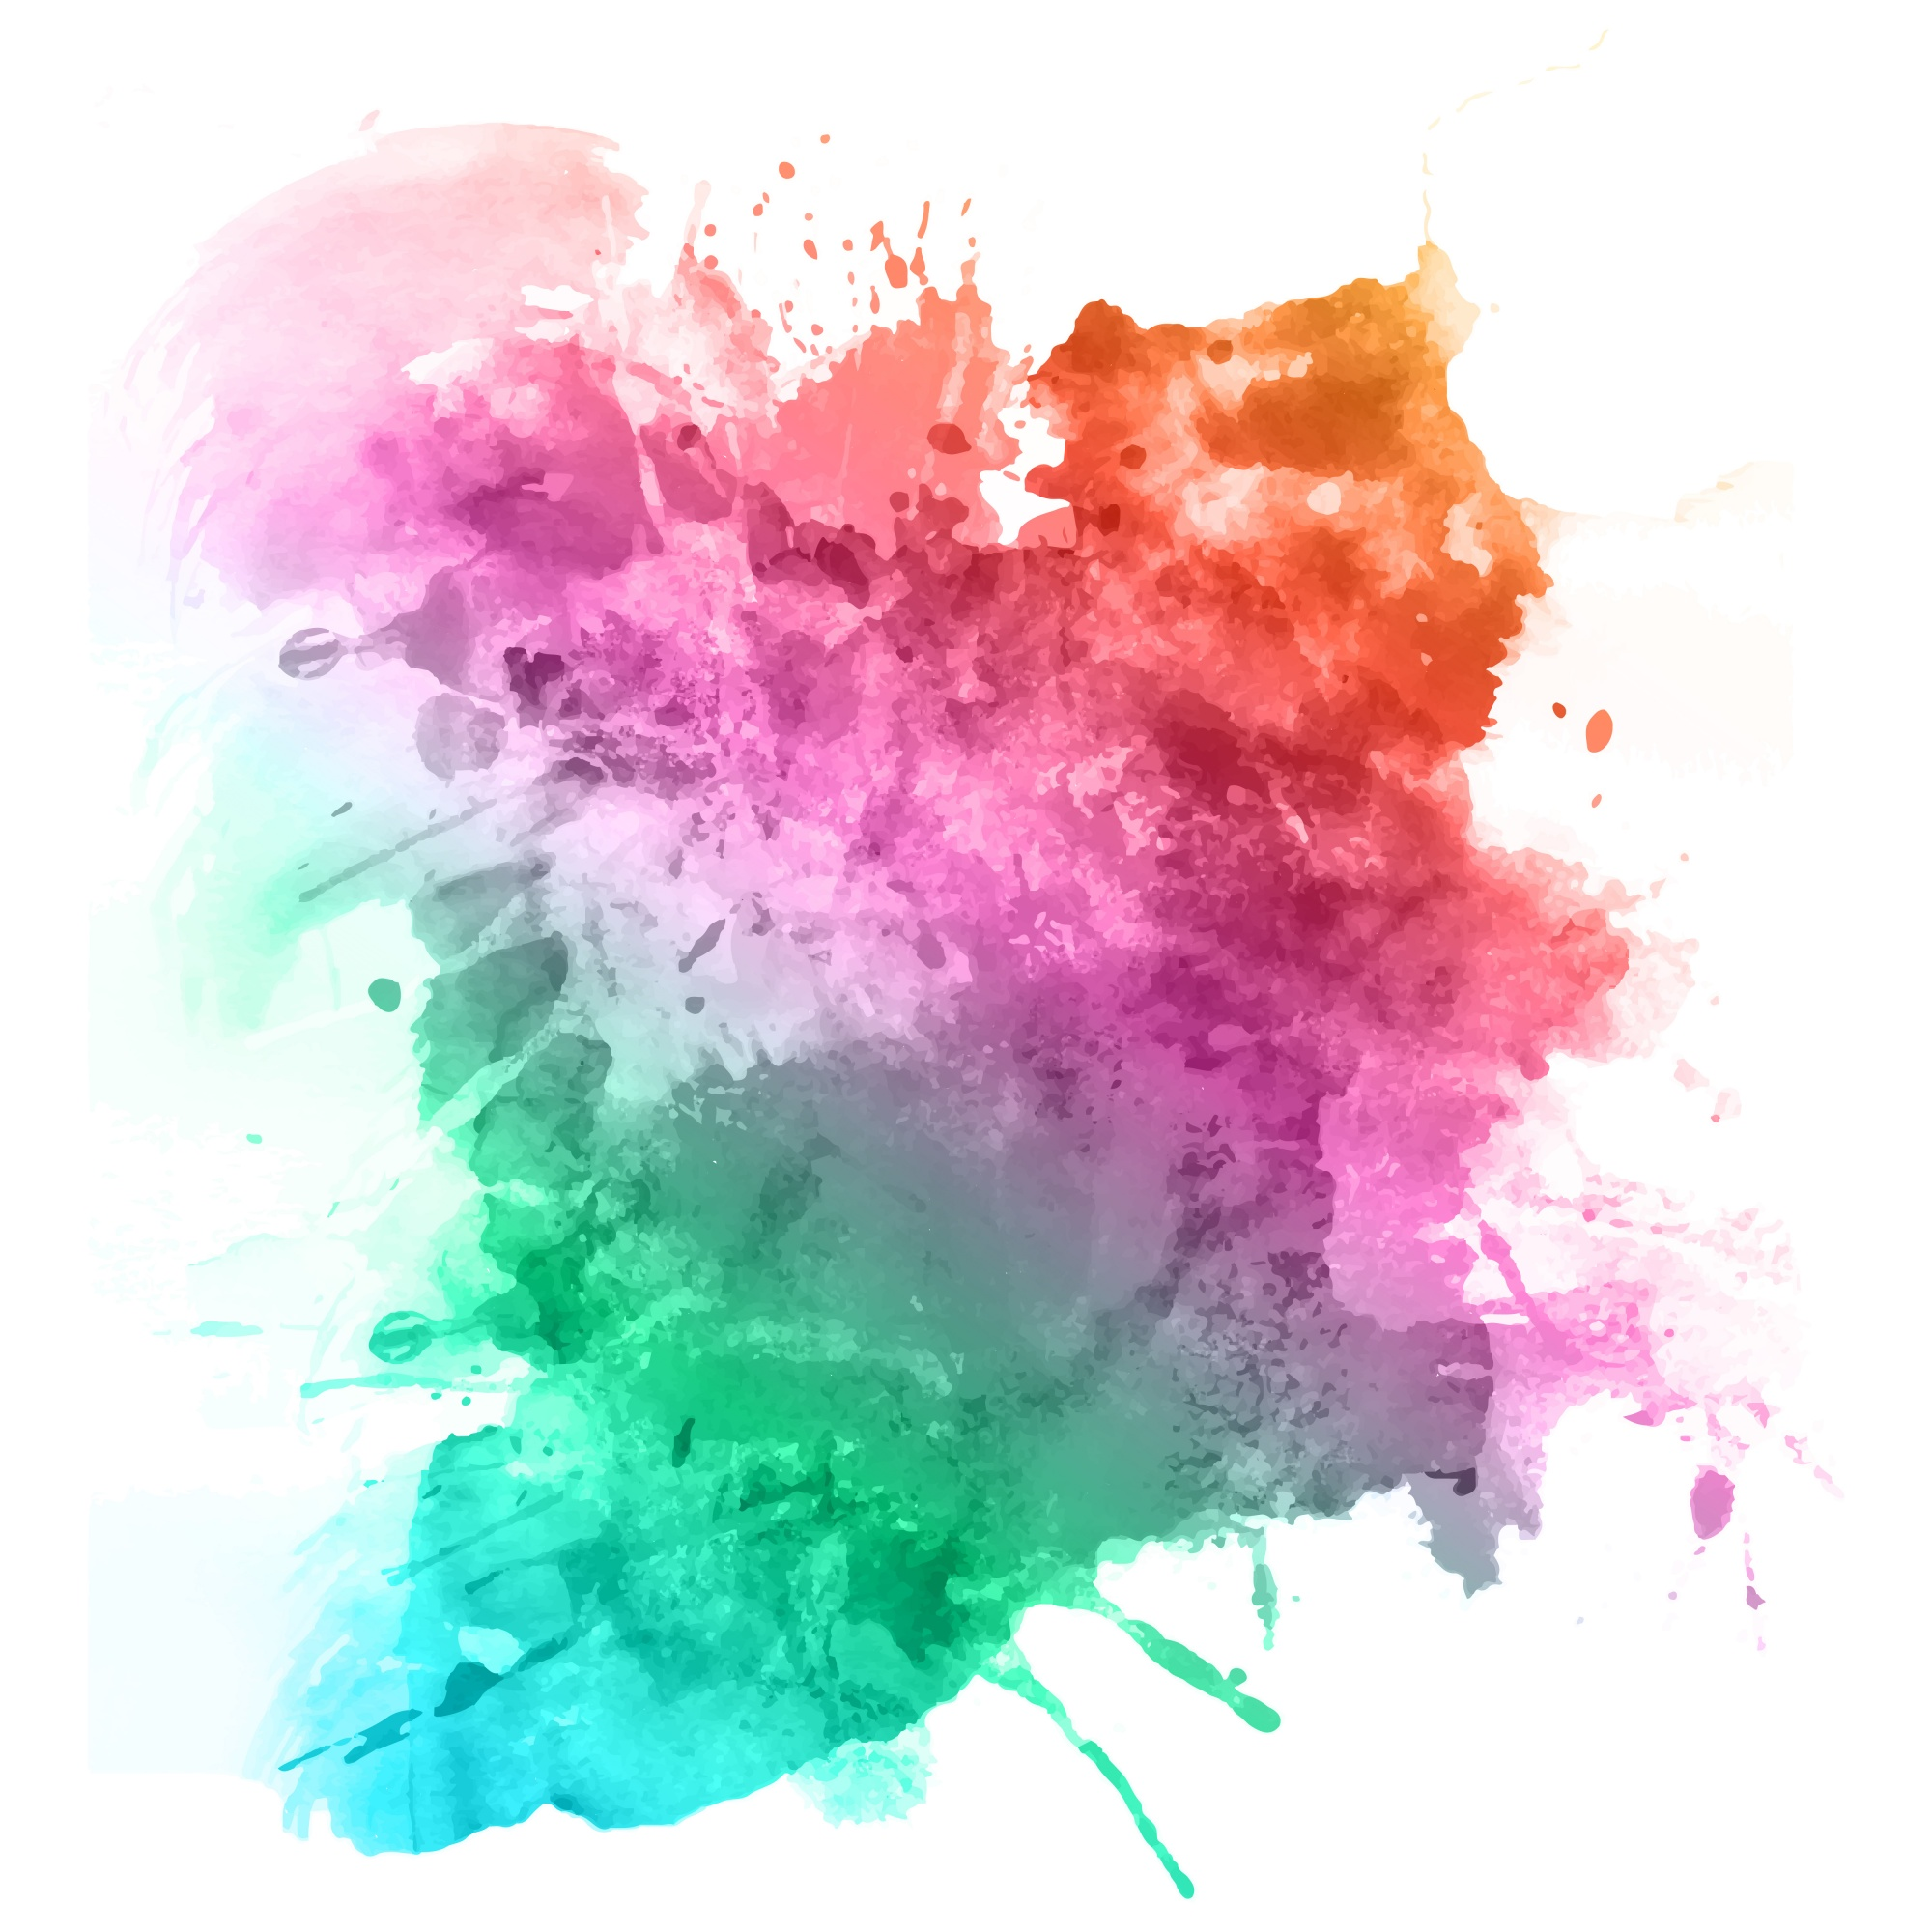 Splatters d'aquarelle en couleurs arc-en-ciel